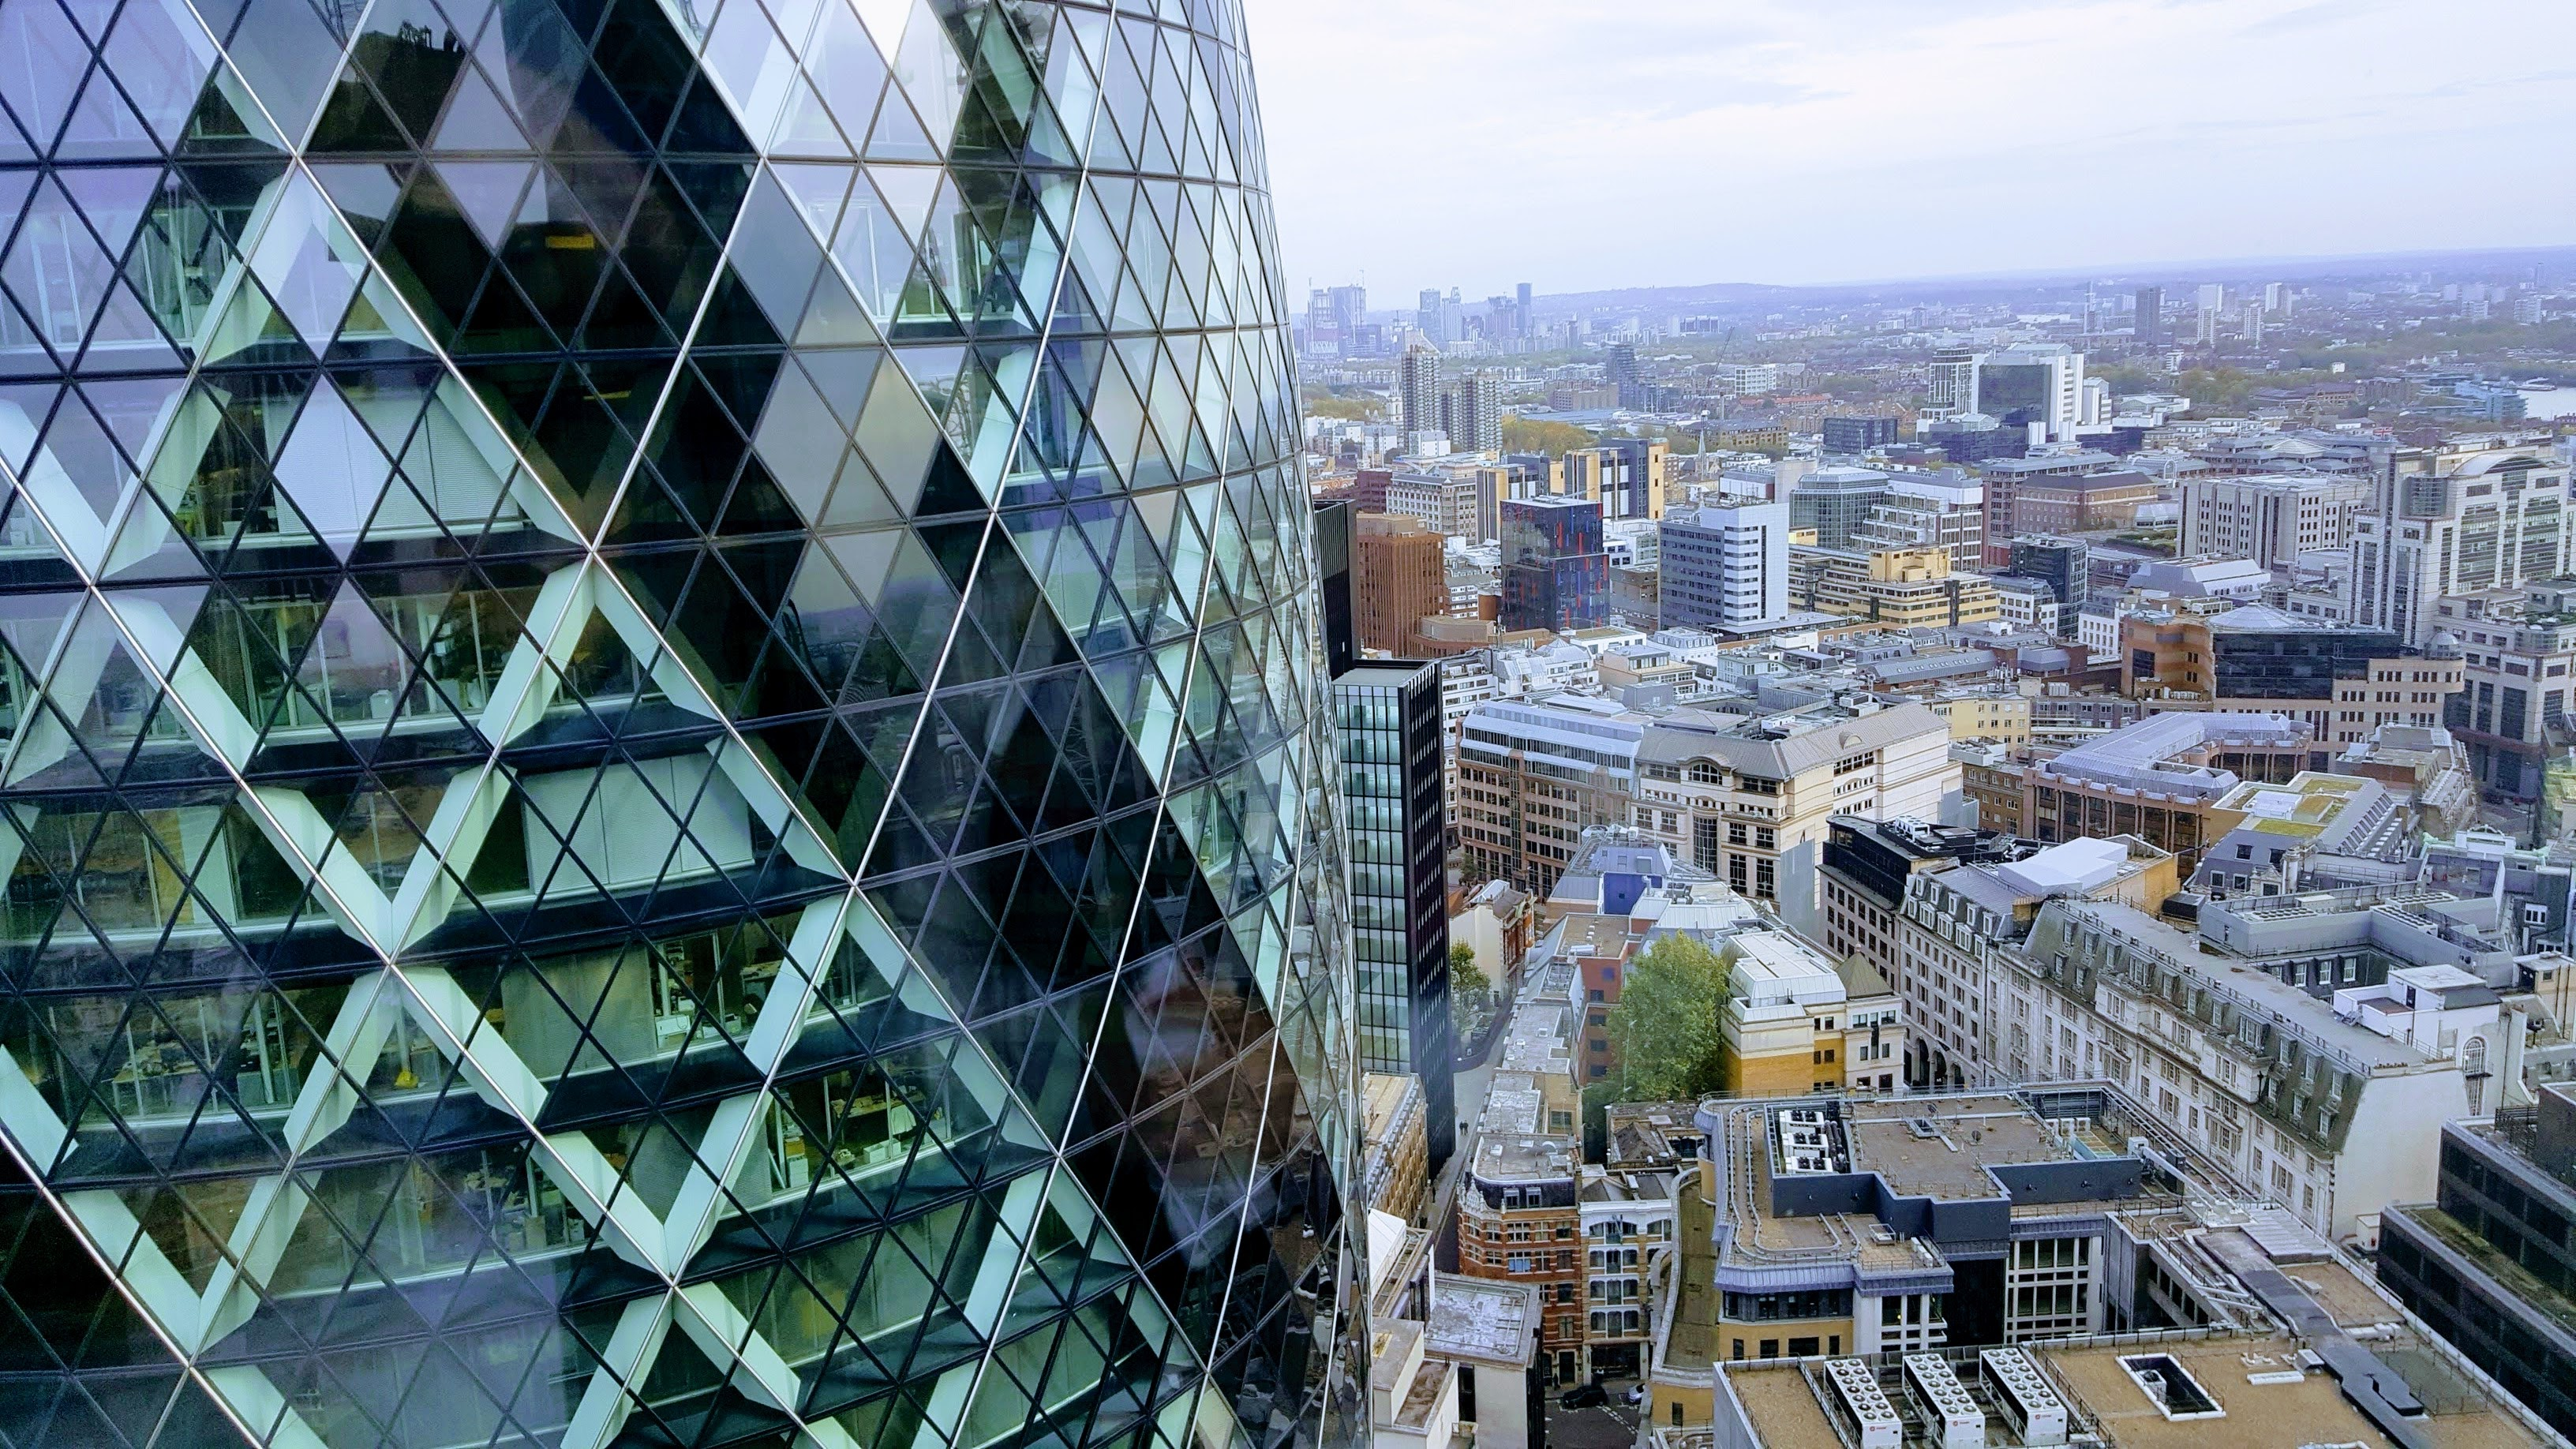 View of the Gherkin in London and the city in the background